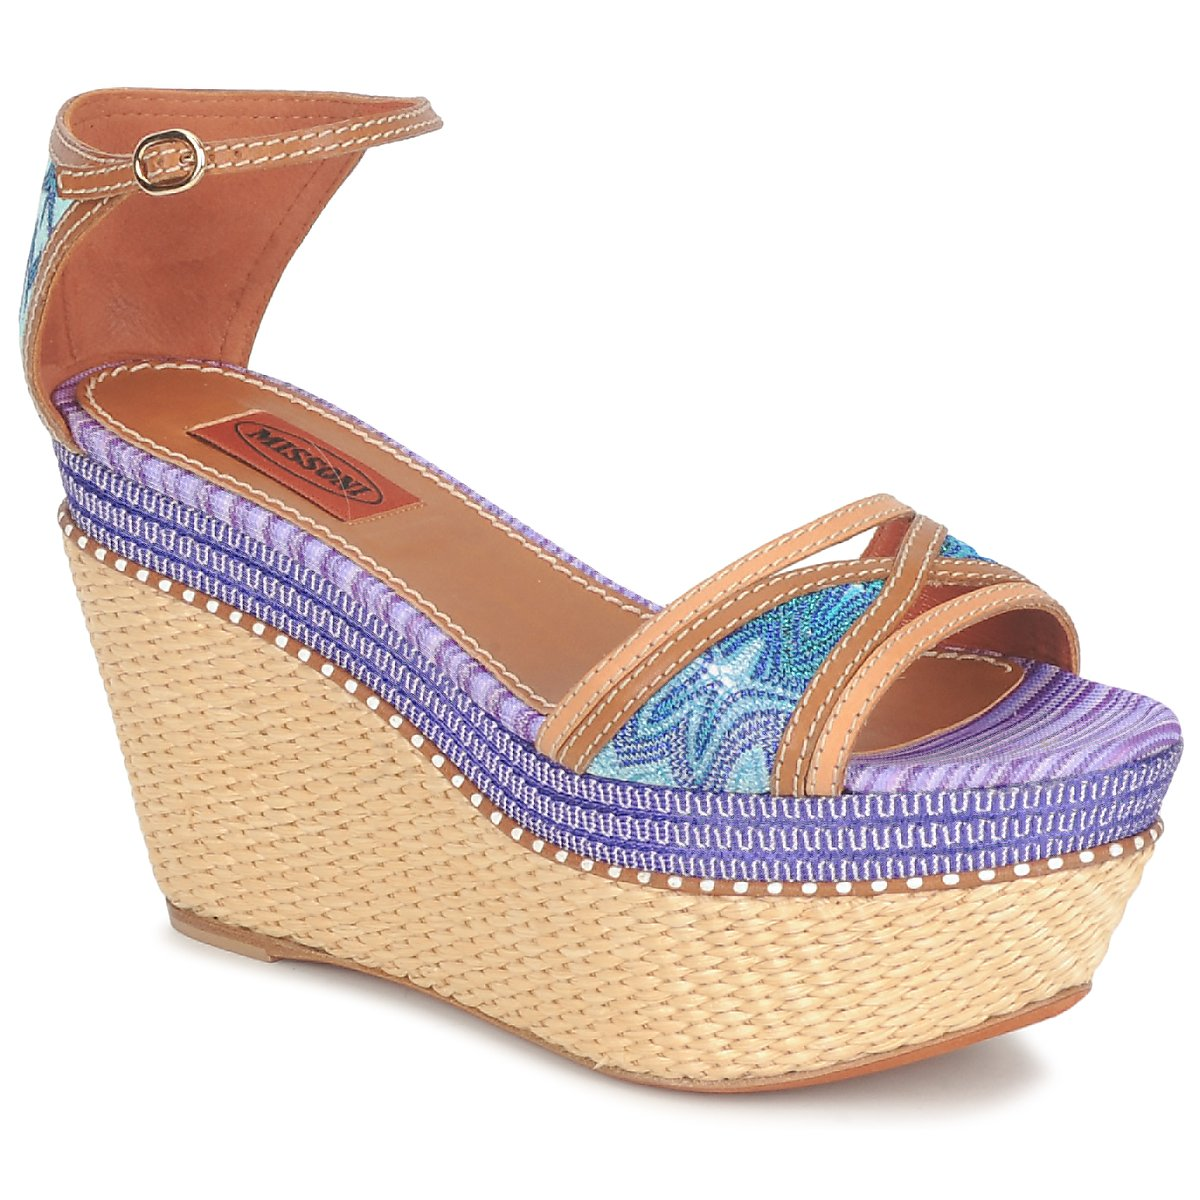 Sandale Missoni TM26 Bleu / Marron